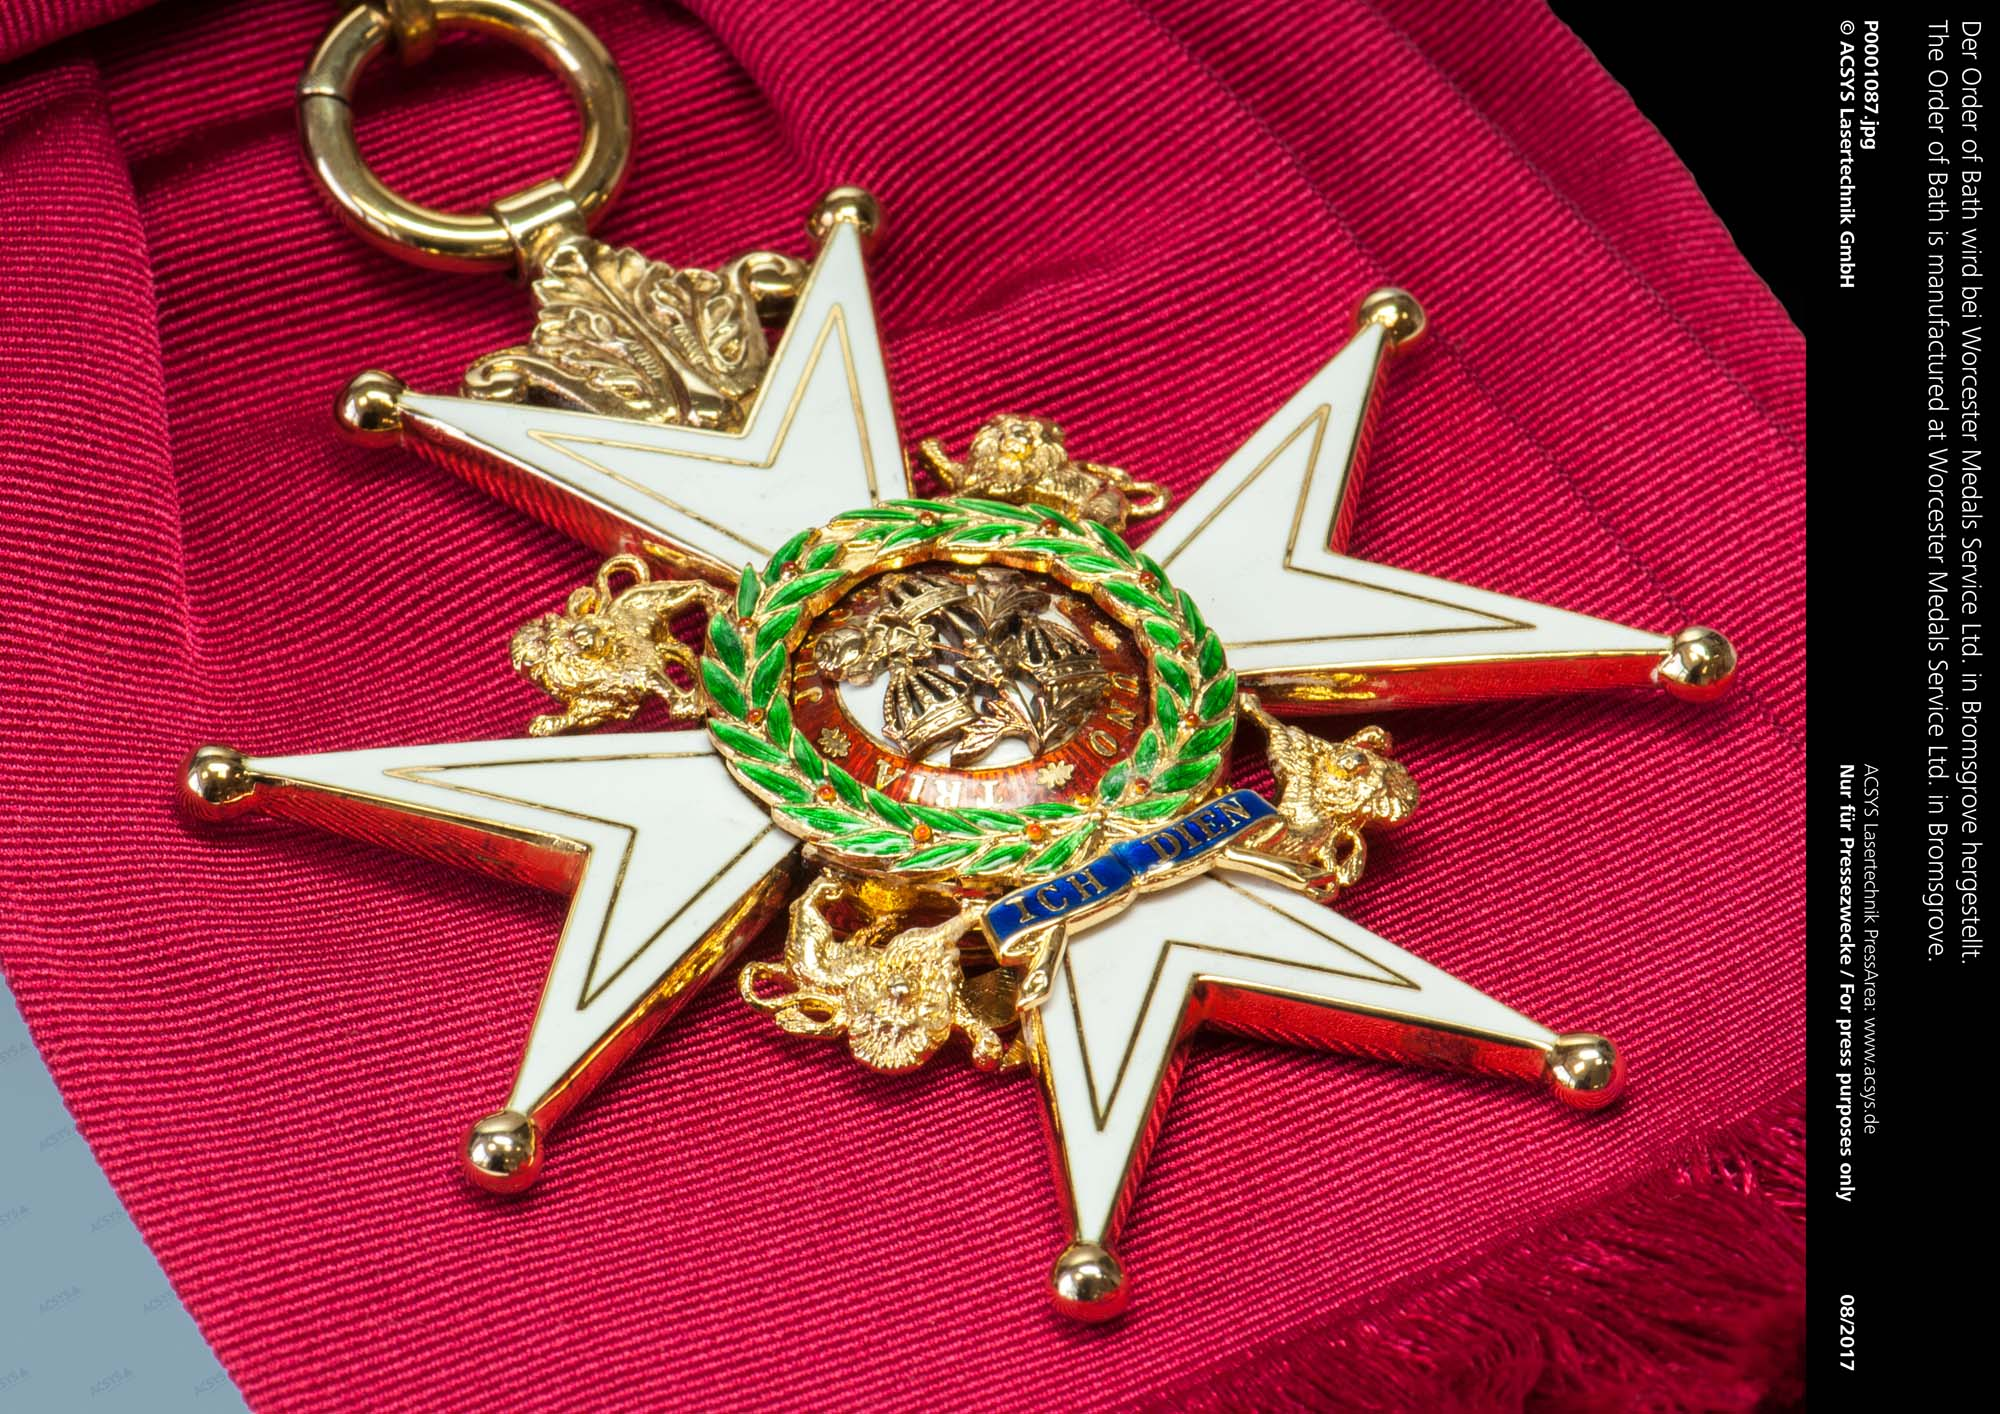 The Order of Bath is manufactured at Worcester Medals Service Ltd. in Bromsgrove.